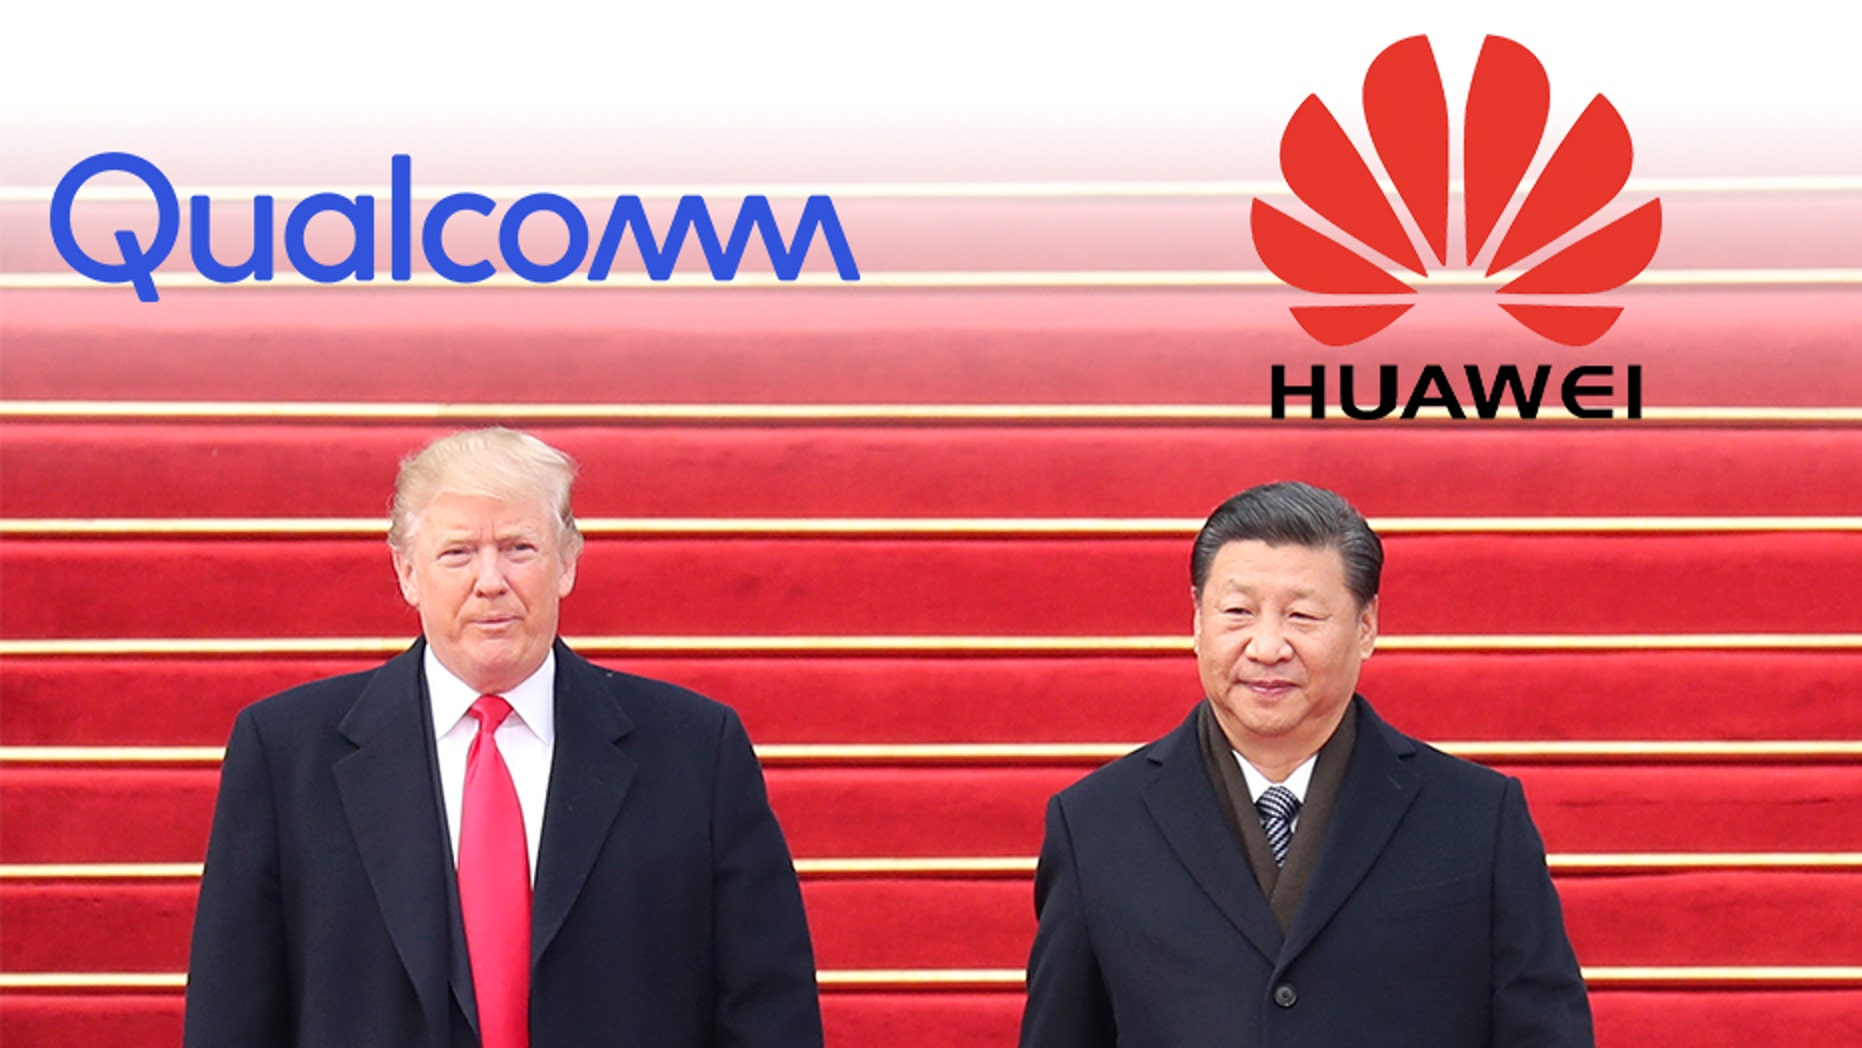 An FTC case against Qualcomm has critics warning it could boost China, at a time when the Trump administration pursues tough policies against Beijing.